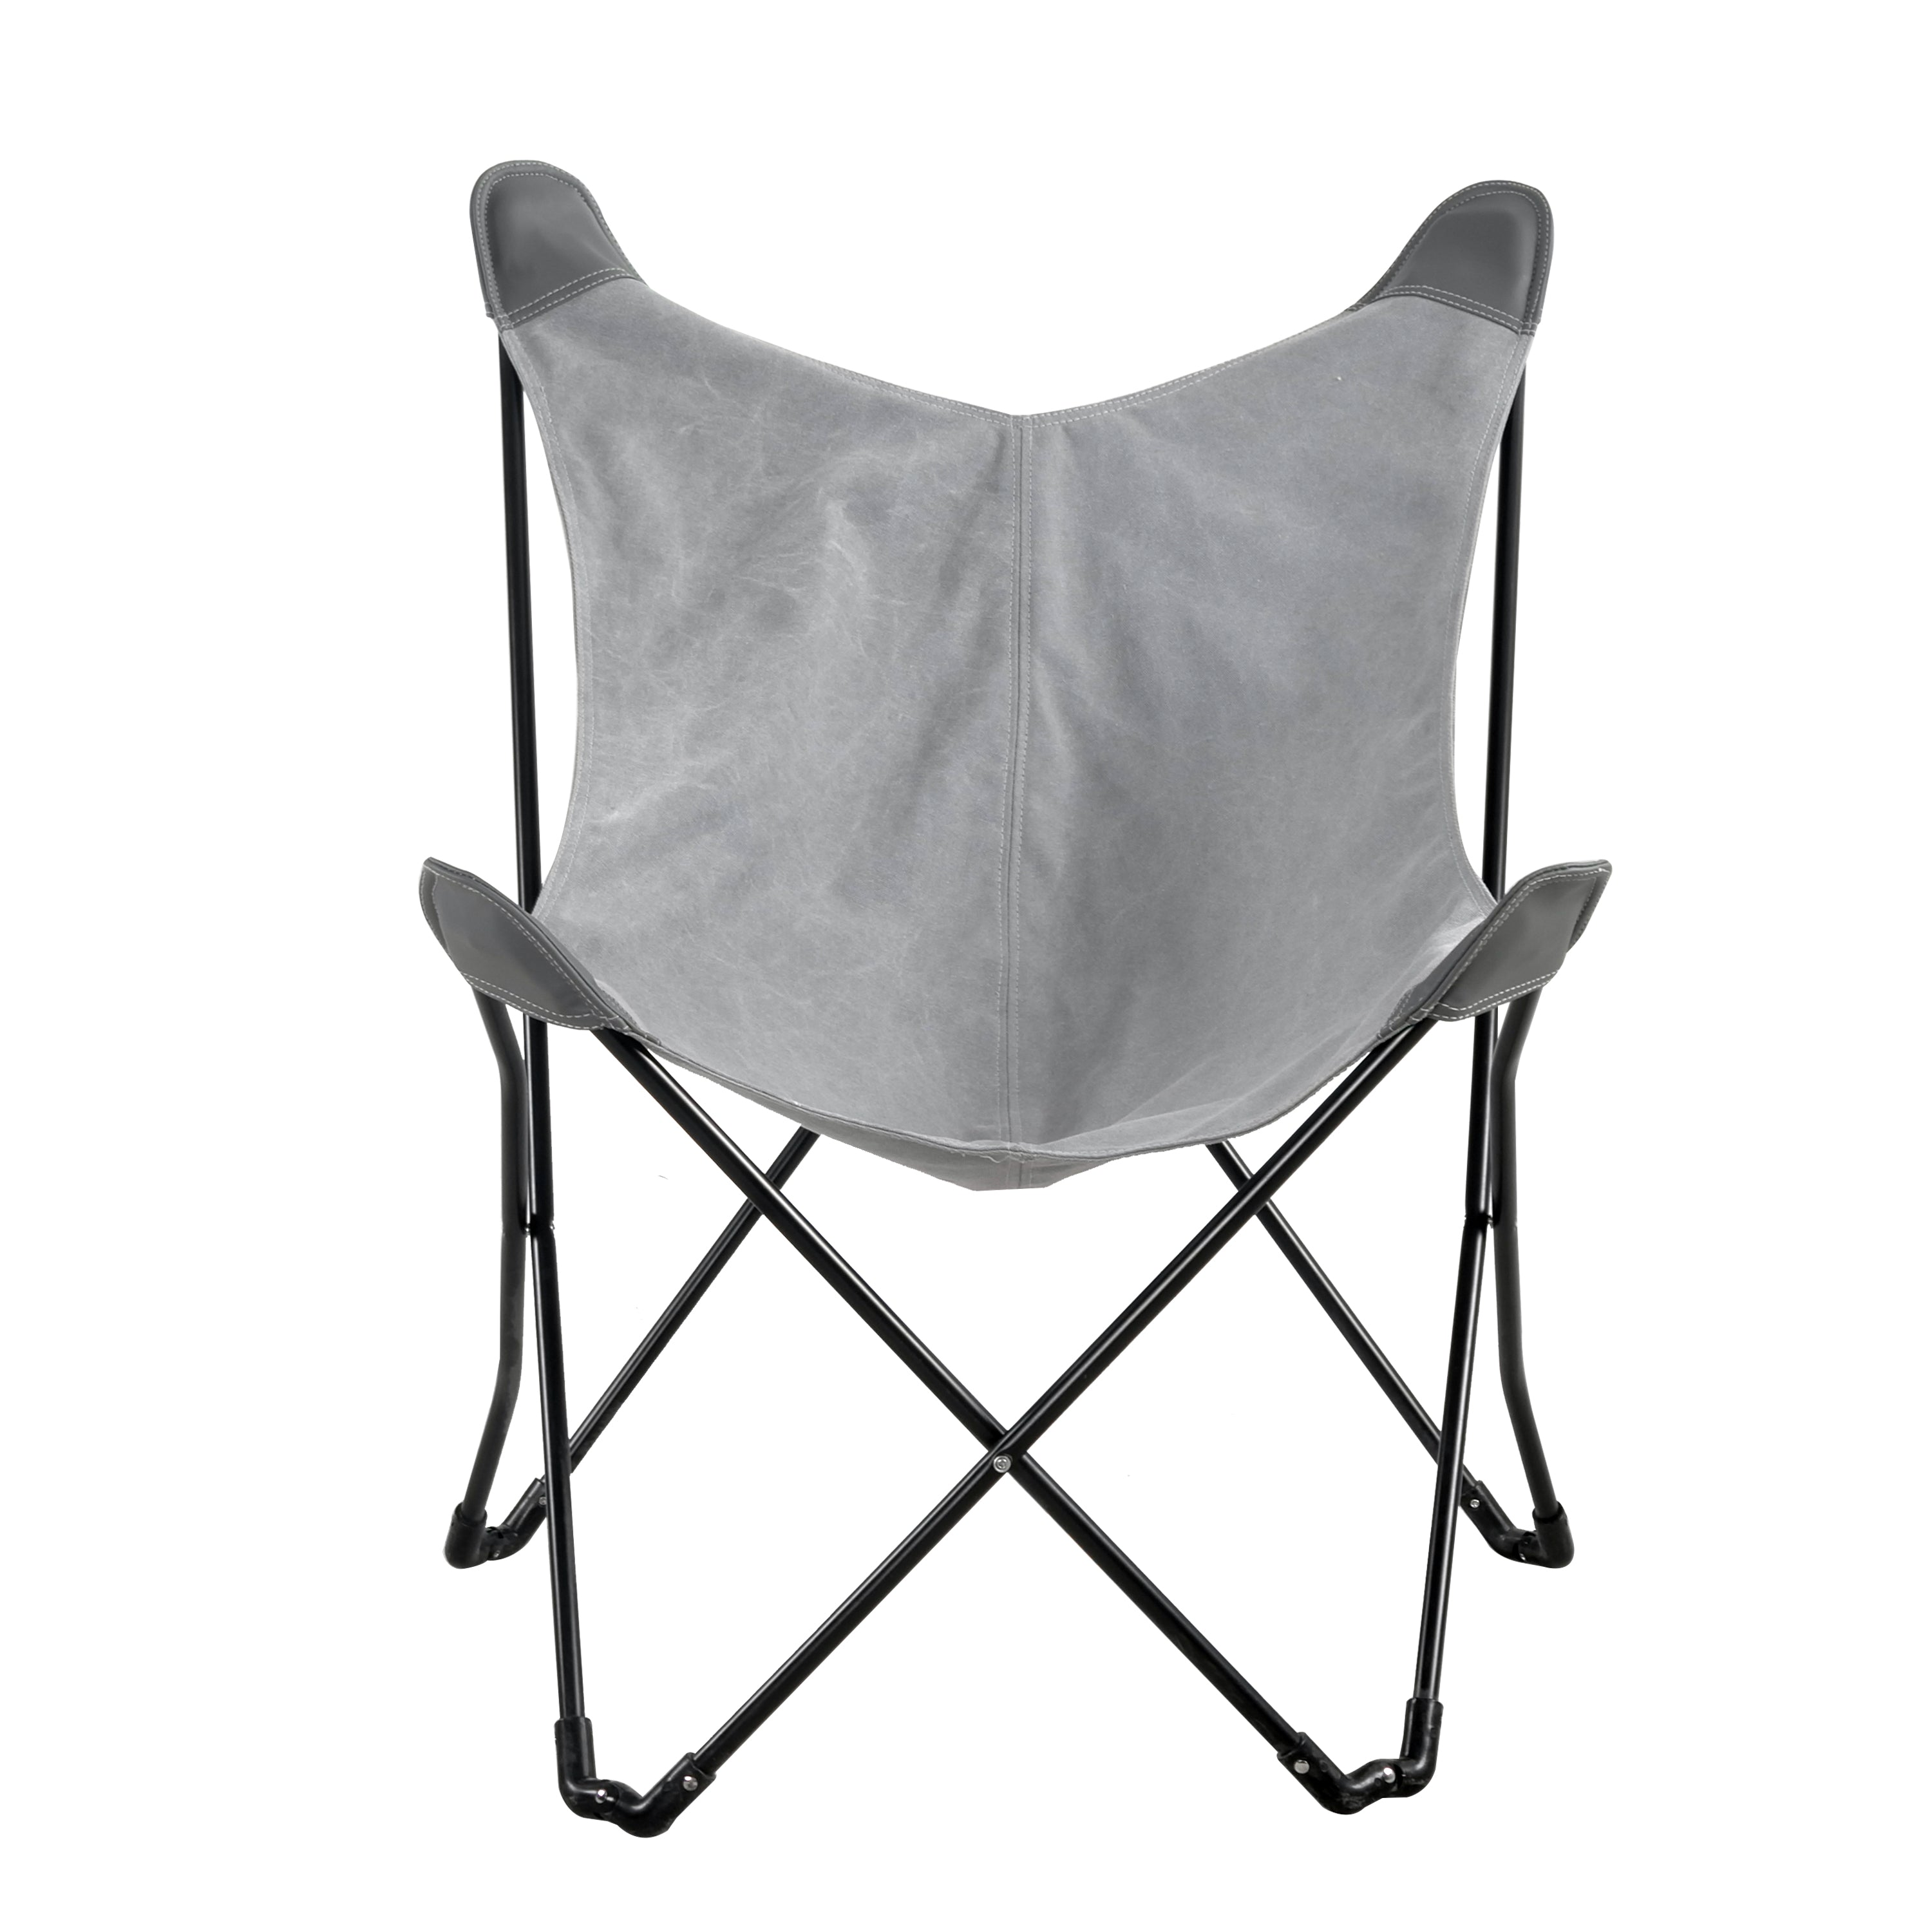 KOUN GREY RELAX CHAIR